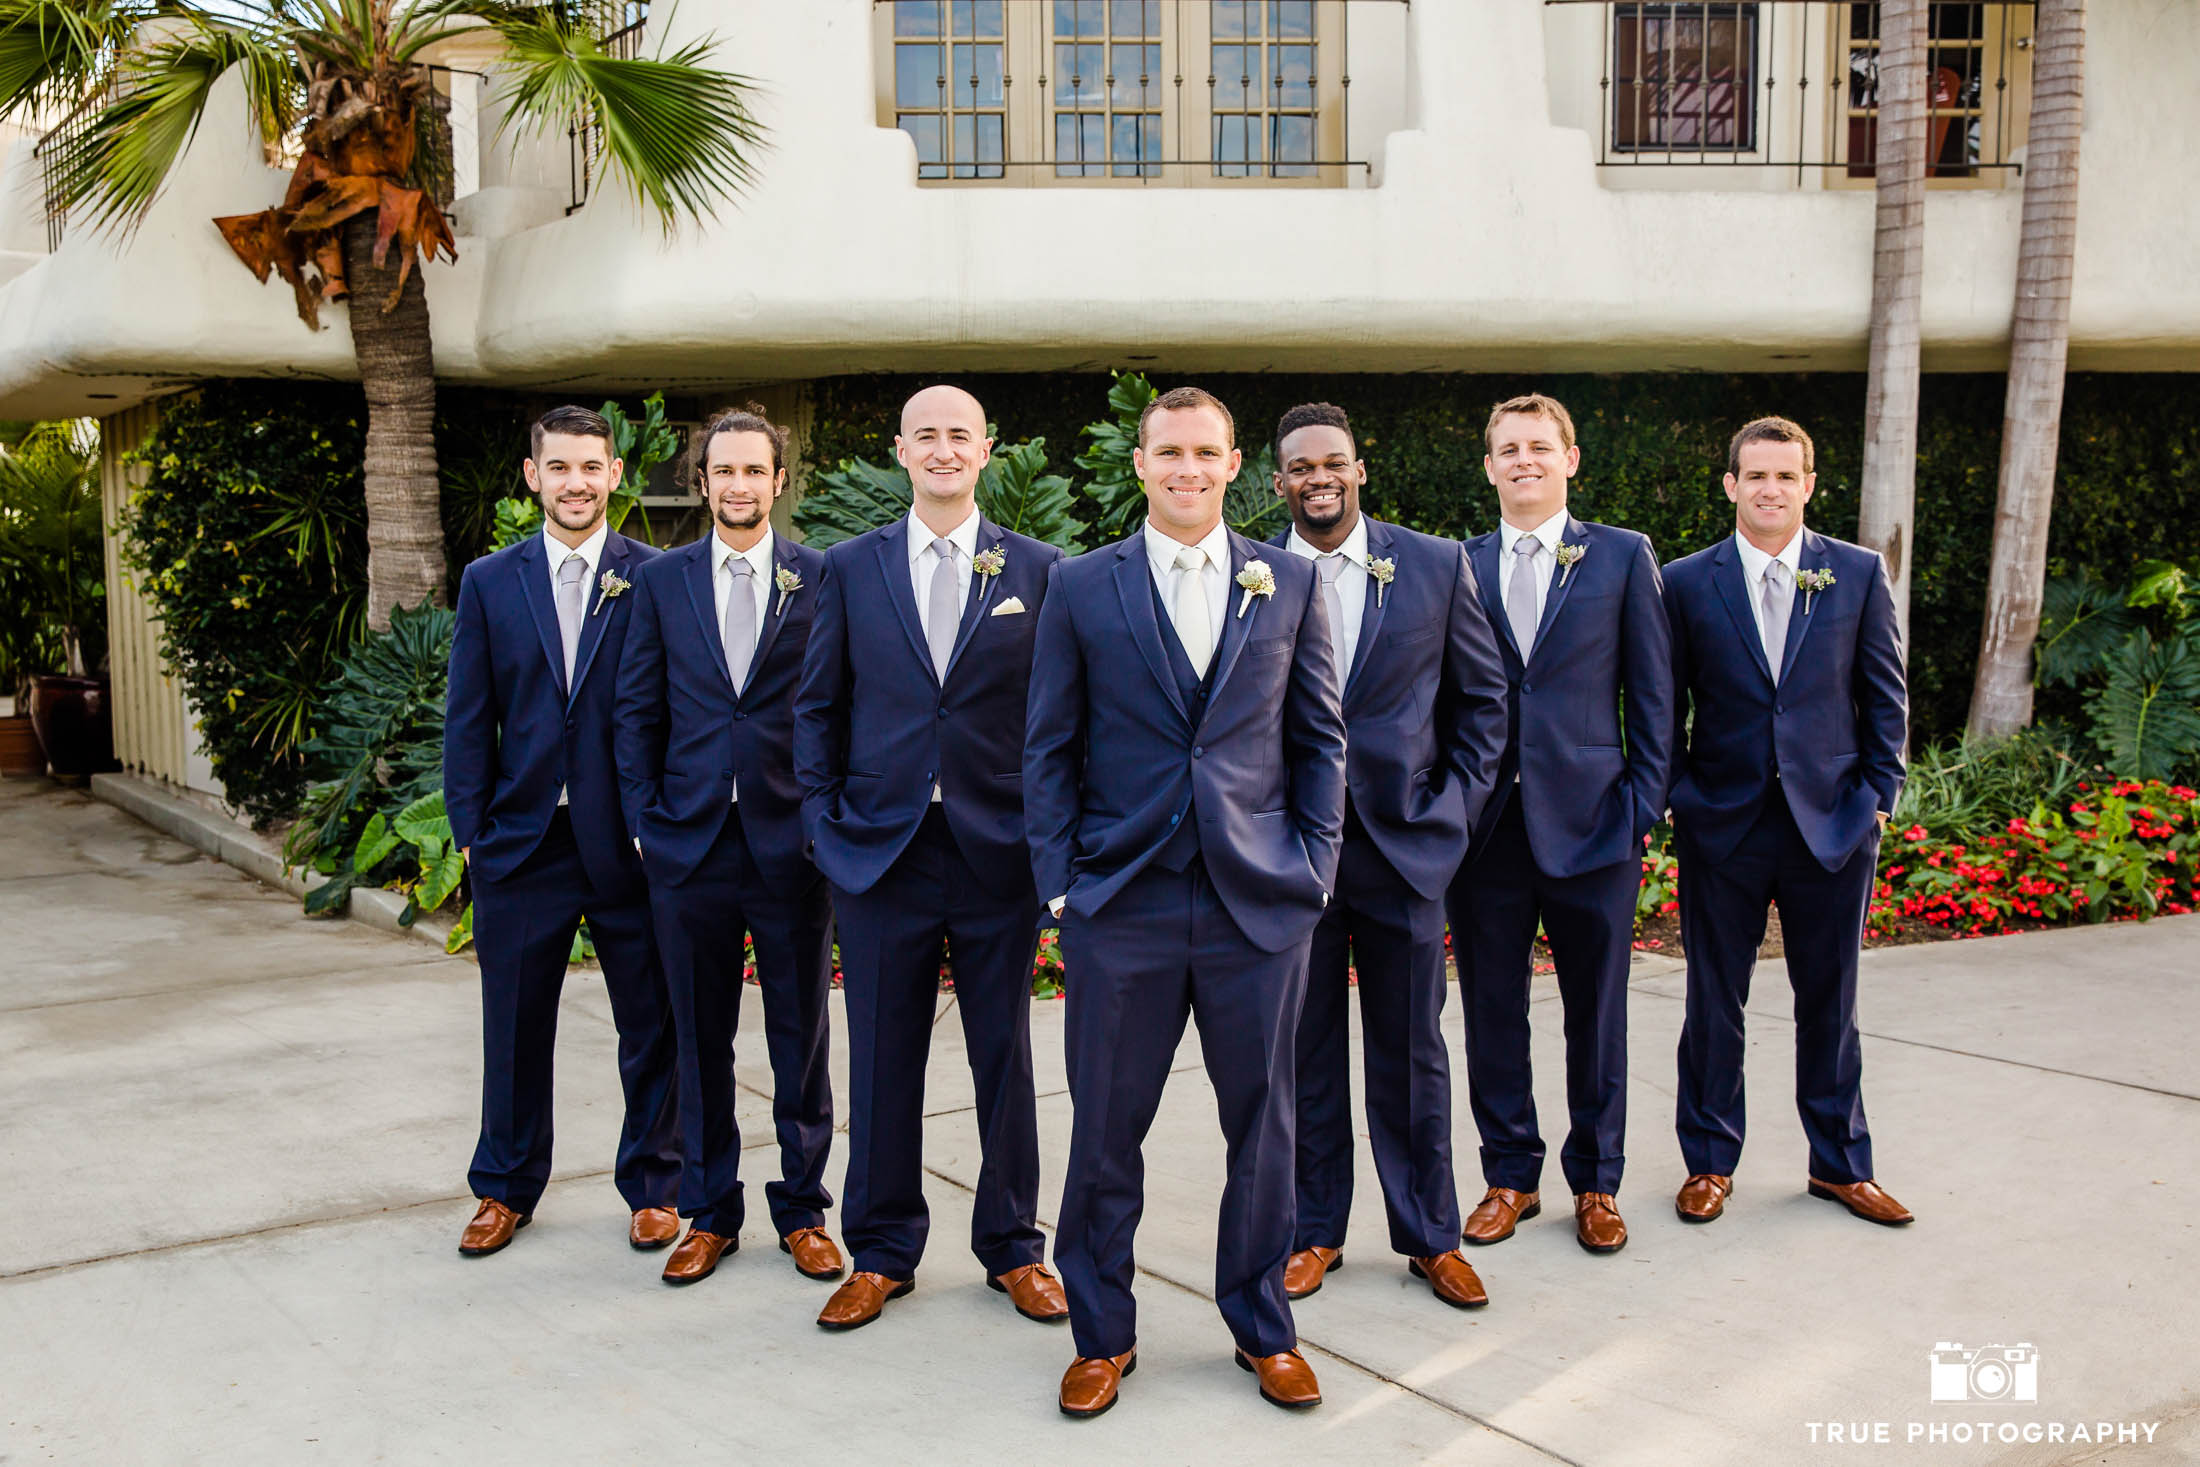 Groomsmen Standing with Matching blue suits and brown shoes